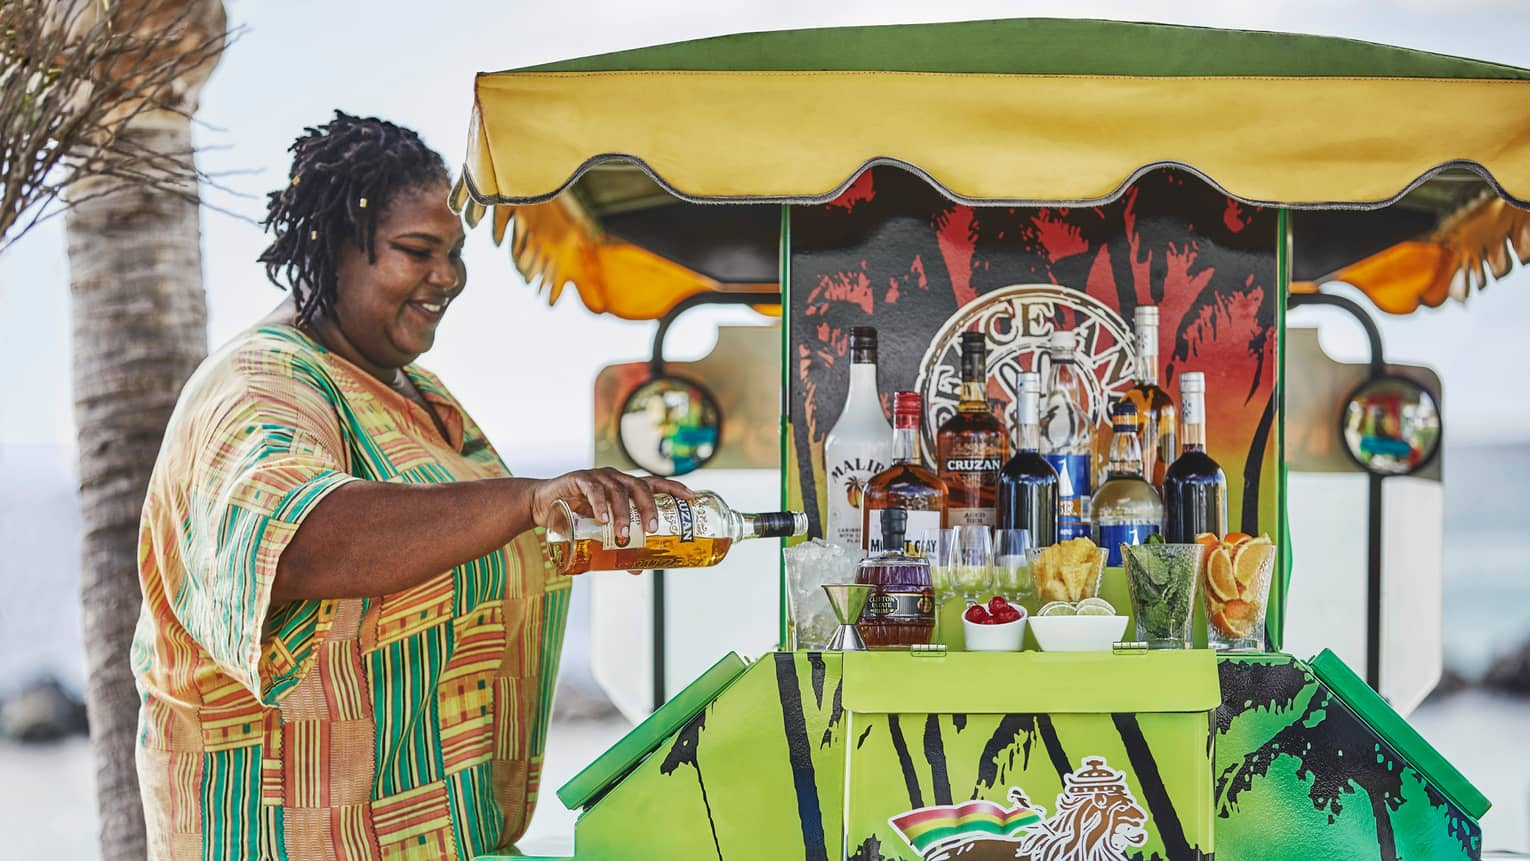 Woman pours rum into cocktail glass with ice at colourful beach cart